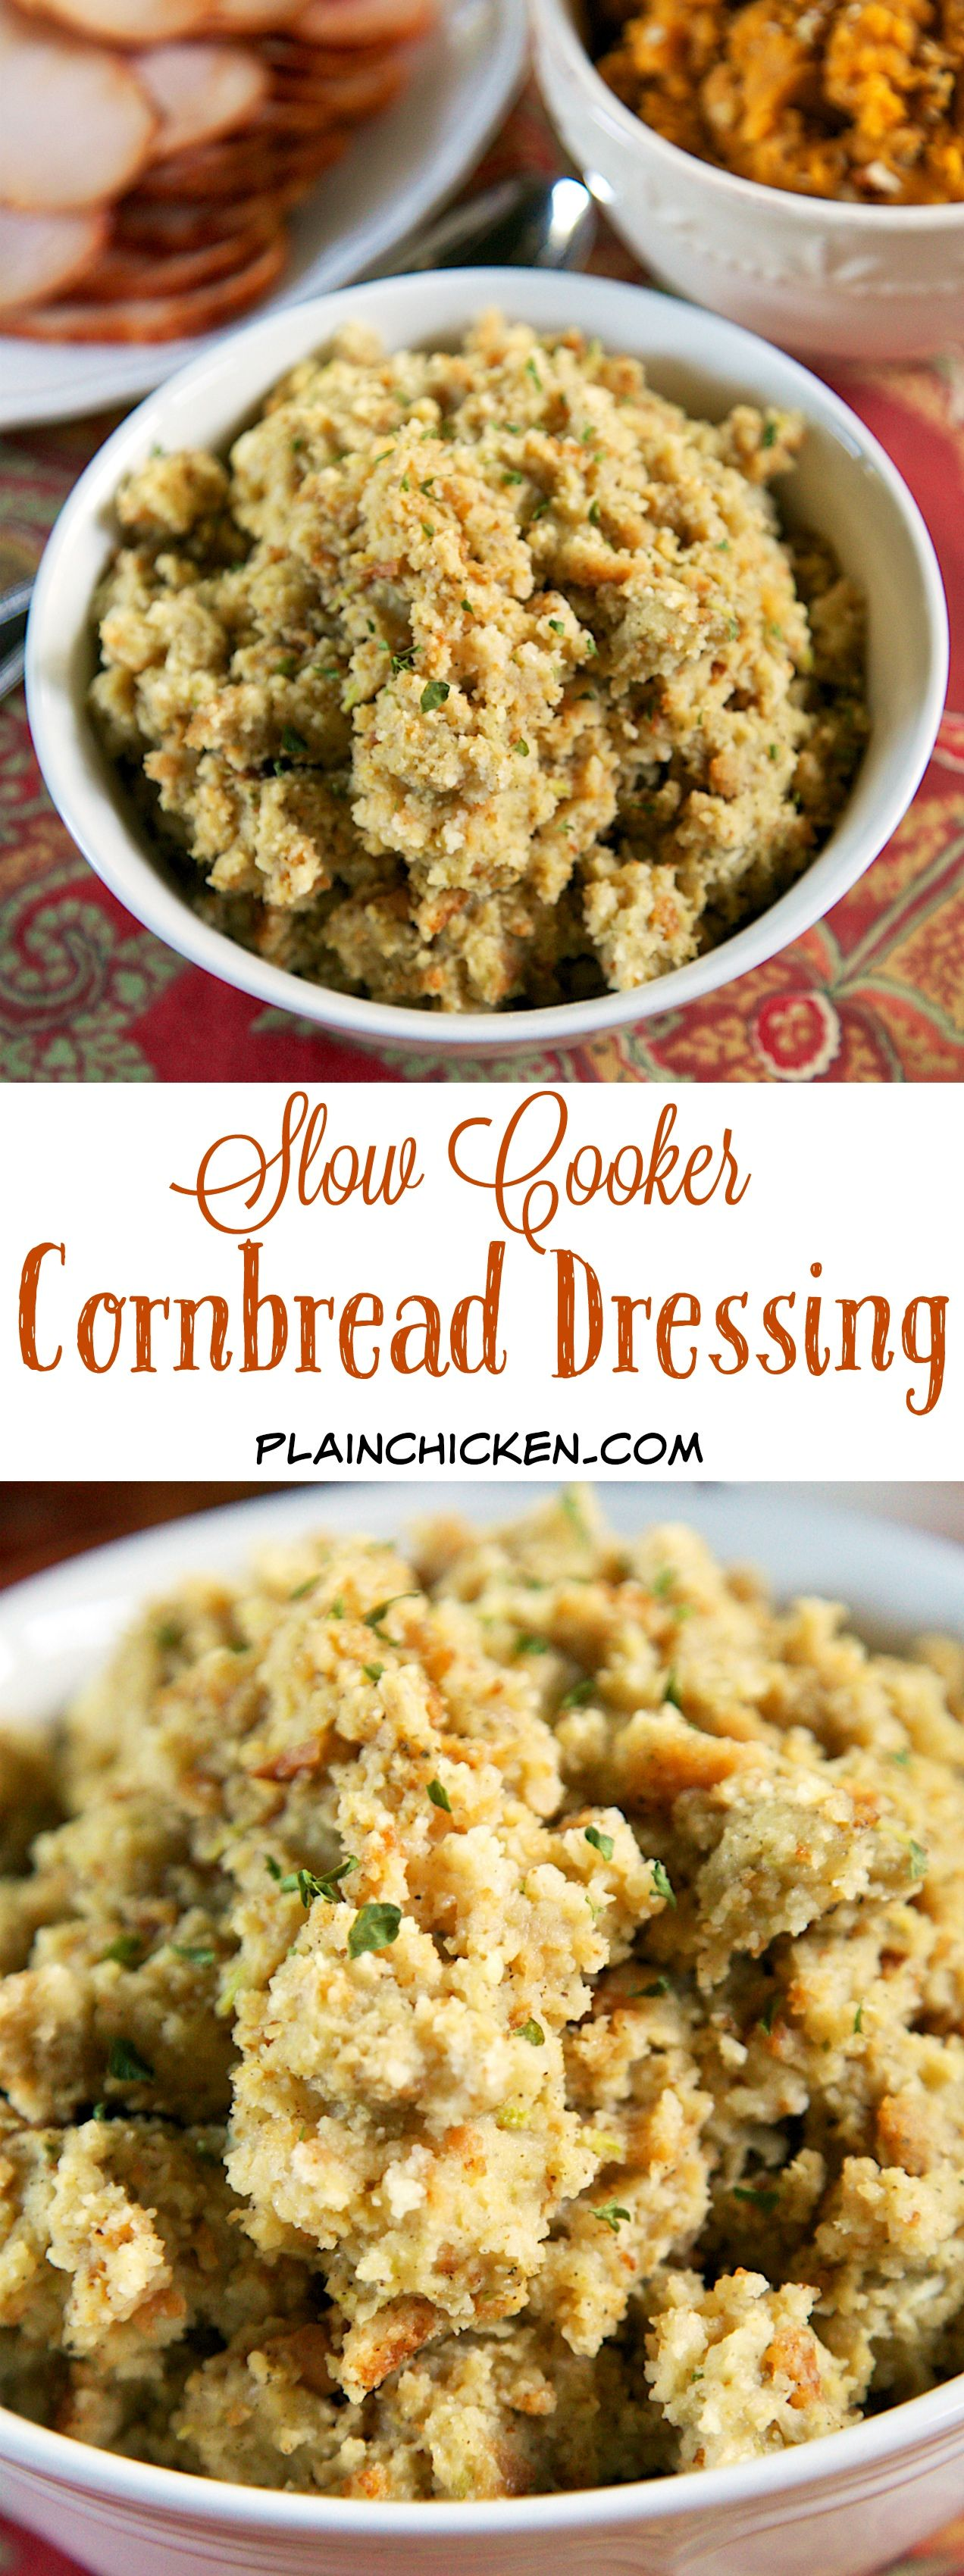 Slow Cooker Cornbread Dressing - Plain Chicken